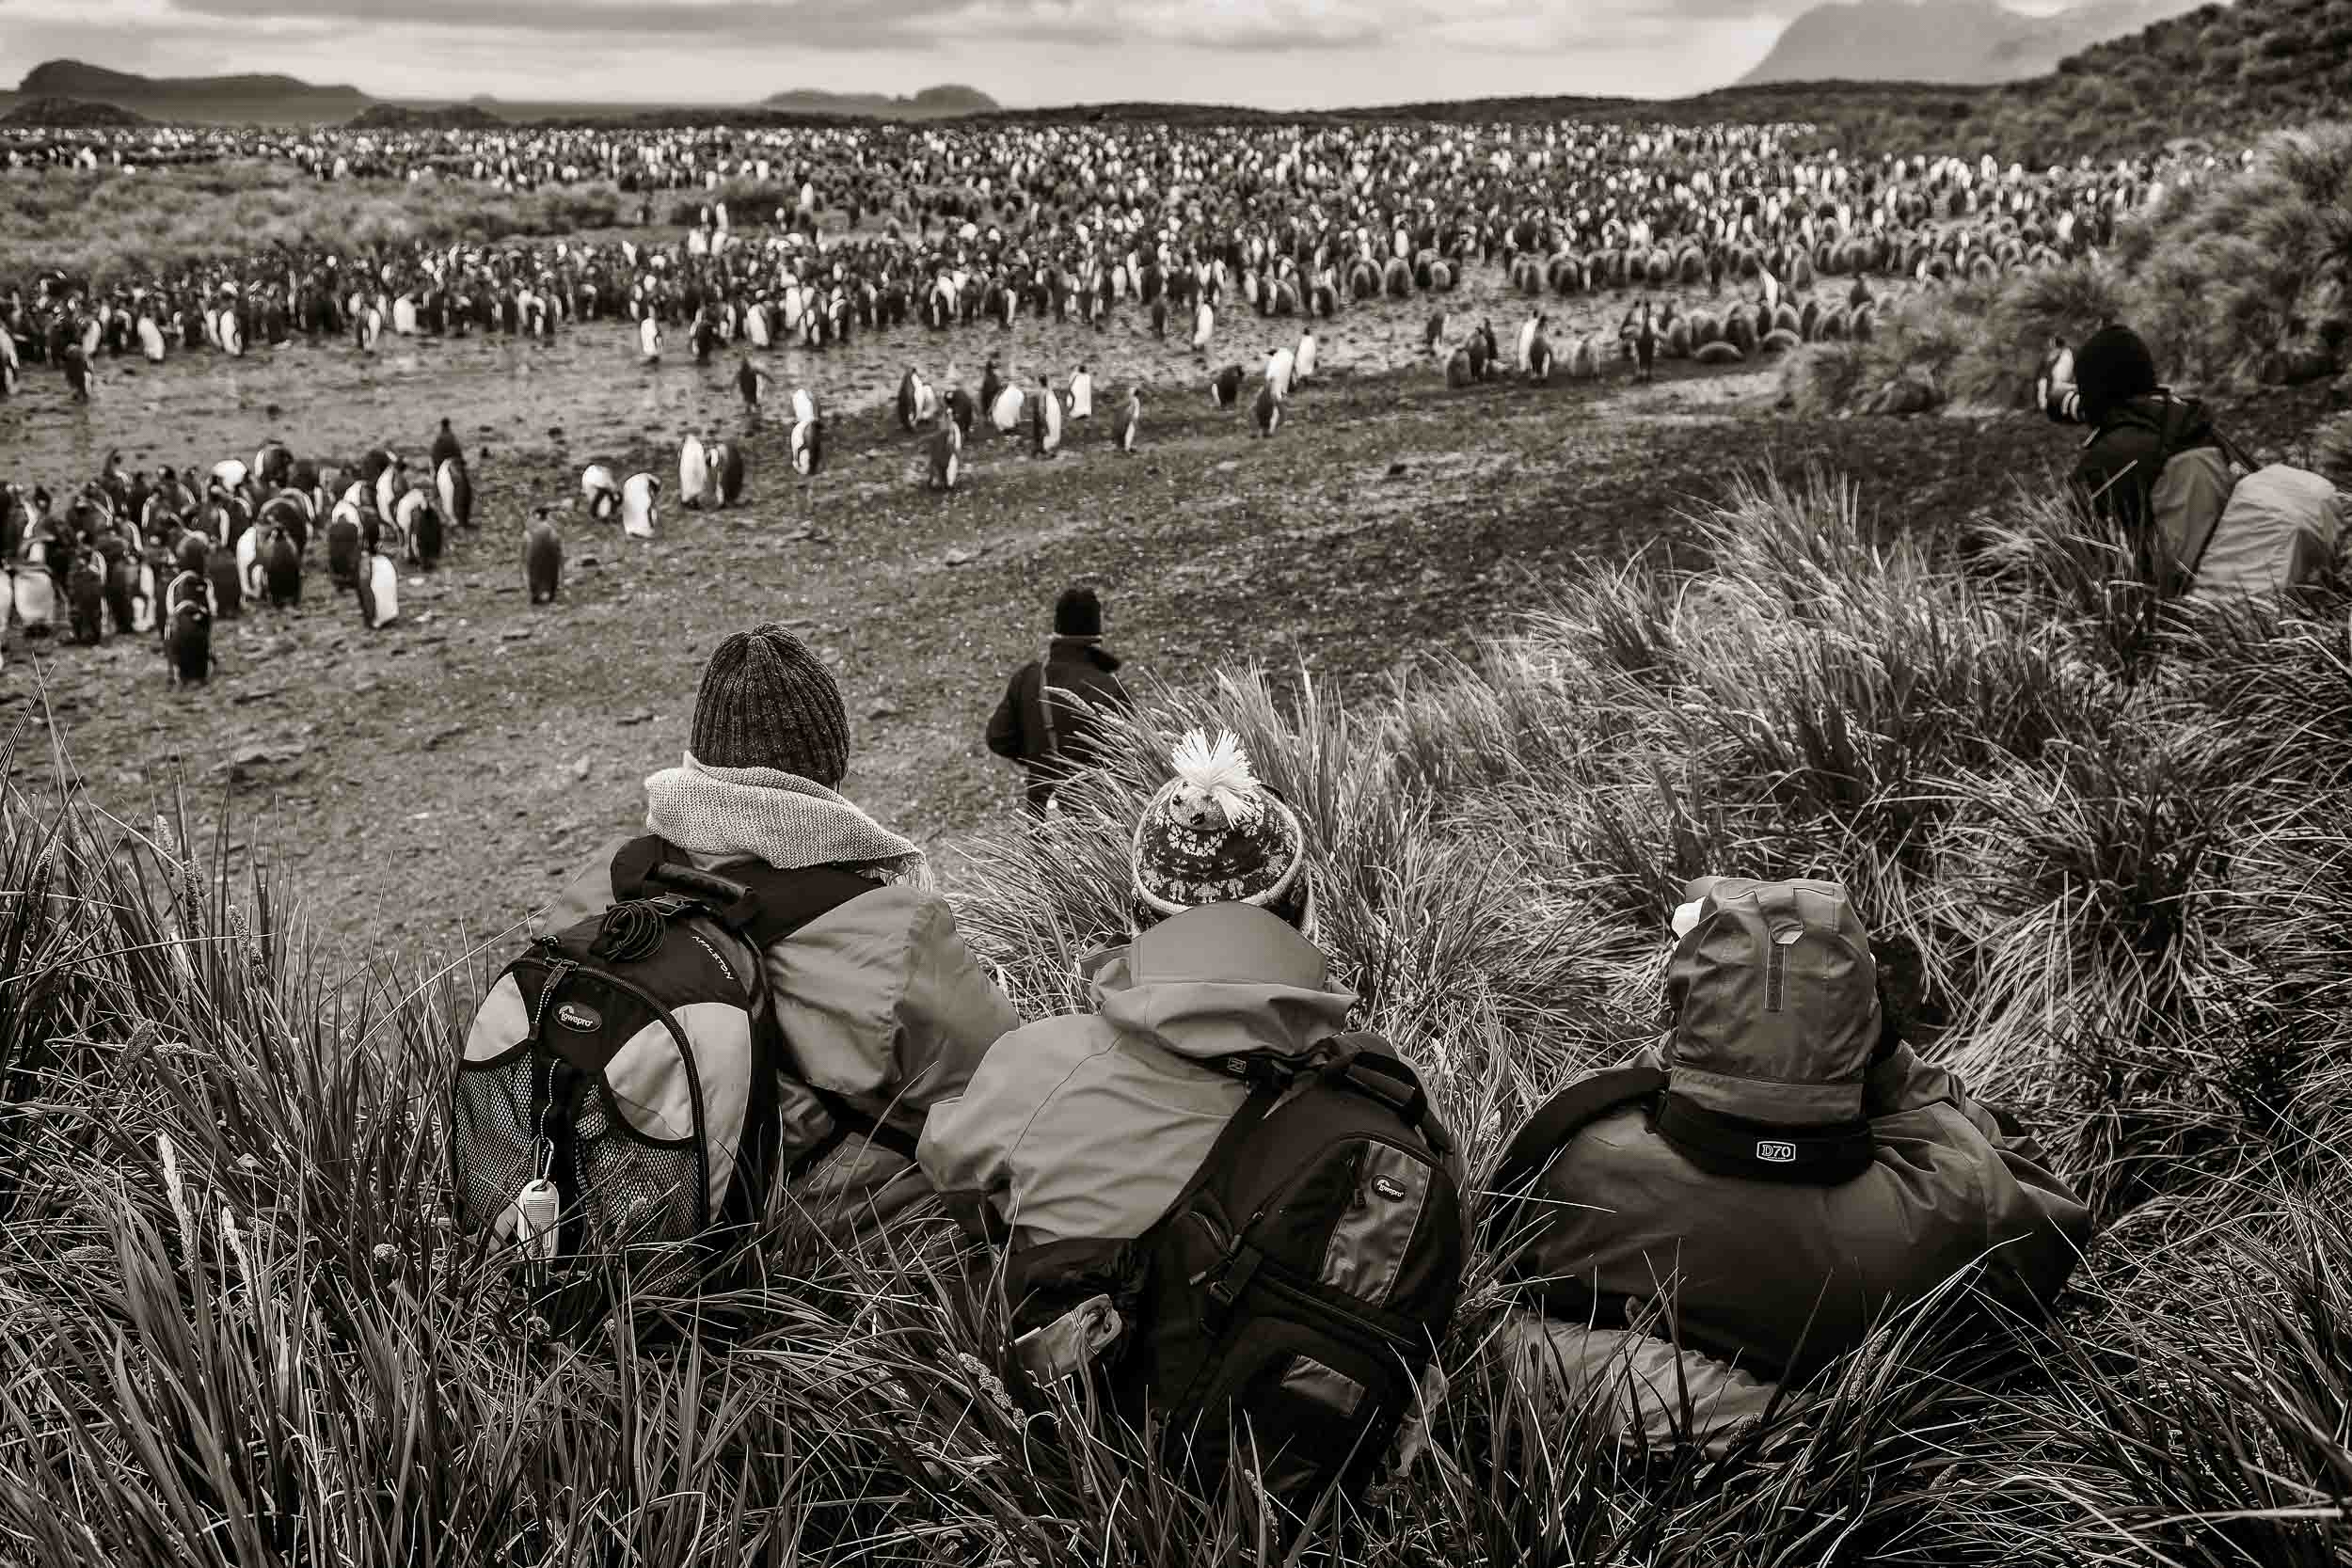 Photography tour participants admiring a large colony of    King penguins    on    Sailsbury Plain    on    South Georgia Island   .